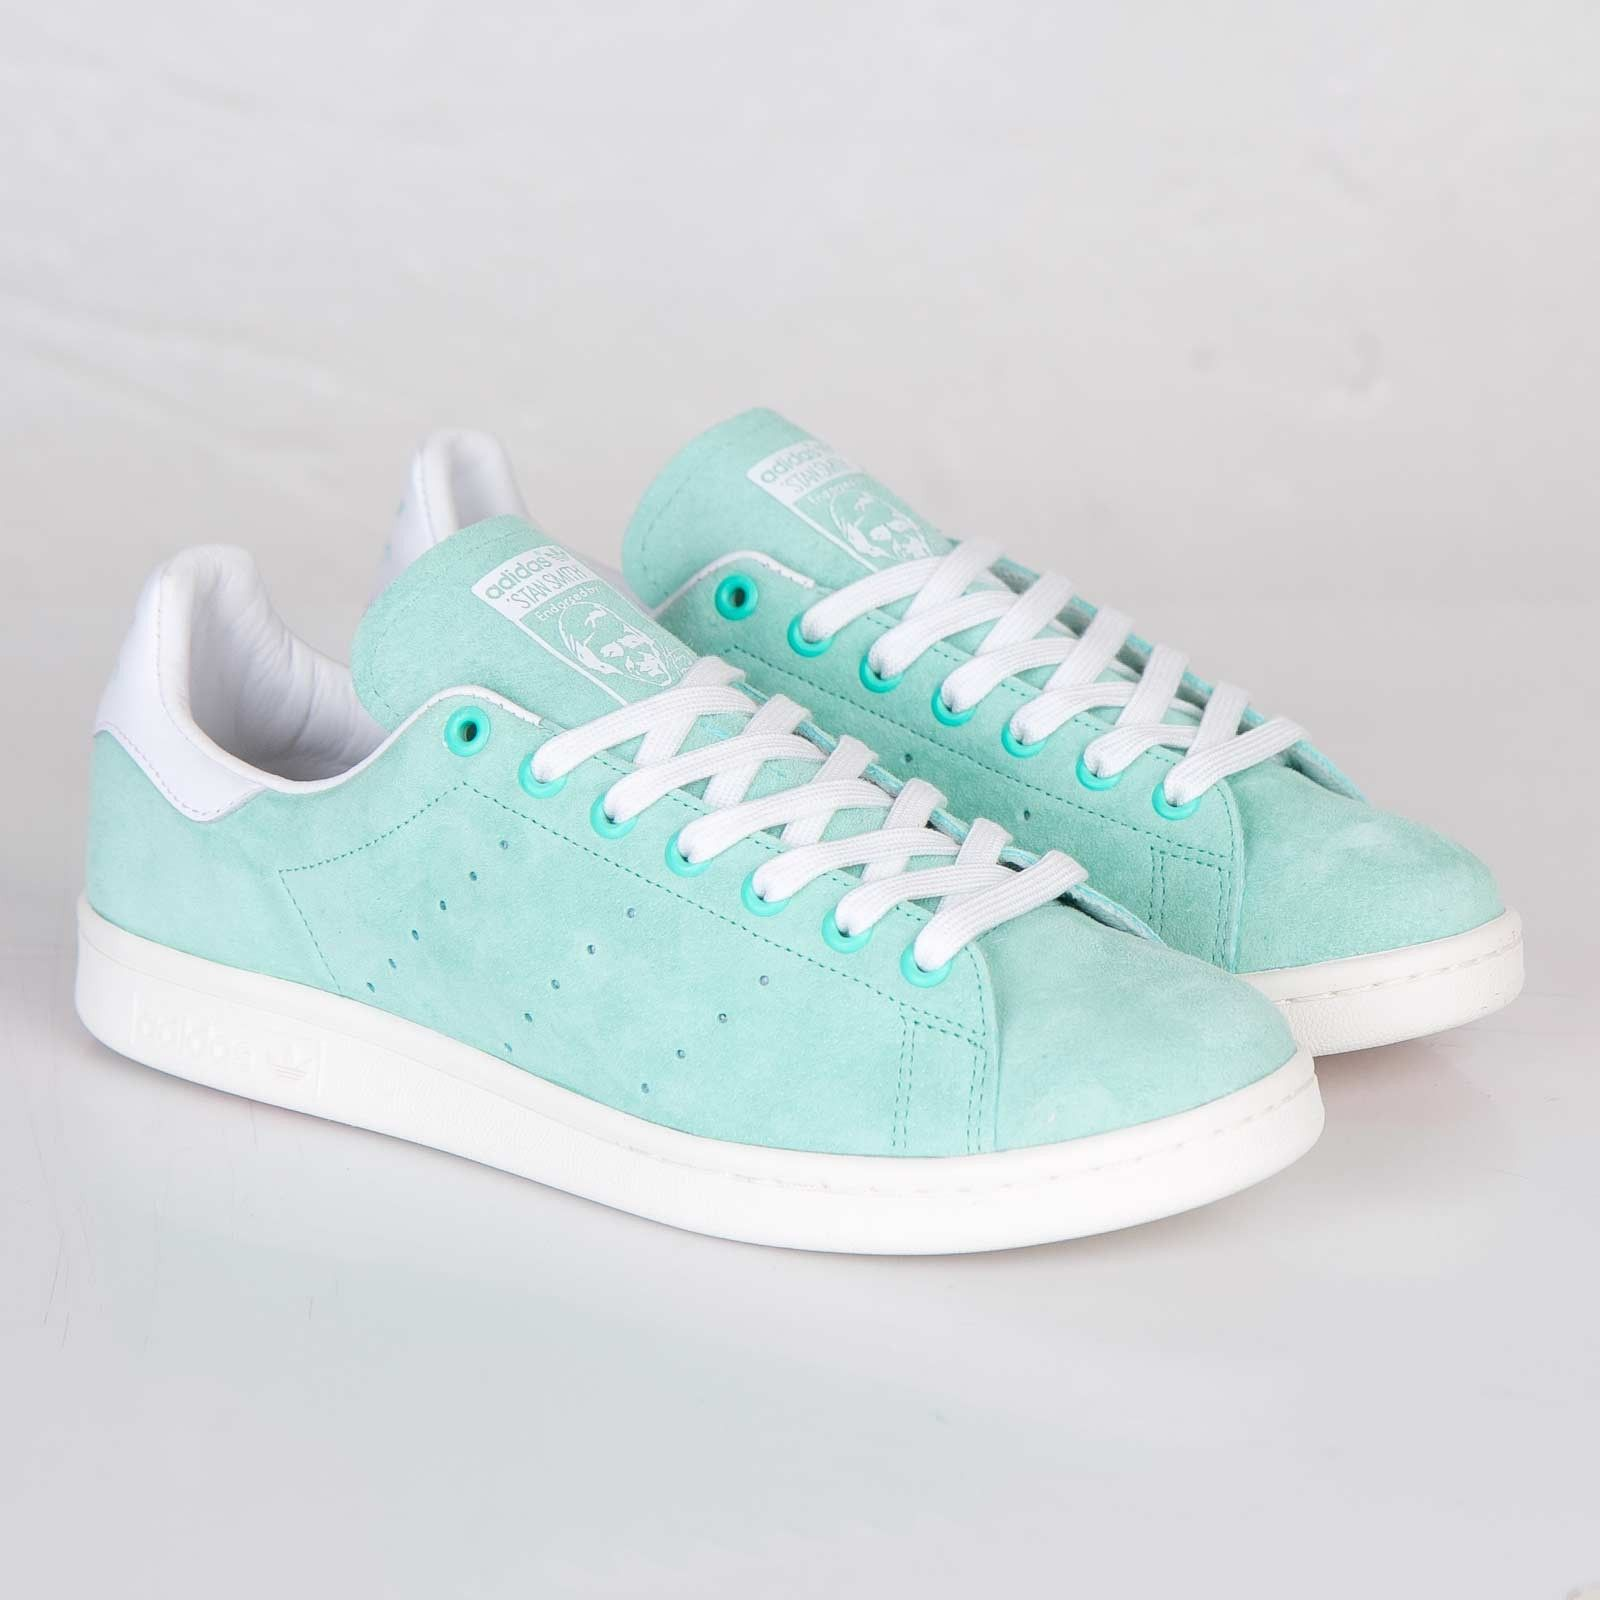 adidas originals stan smith 2 mens shoes